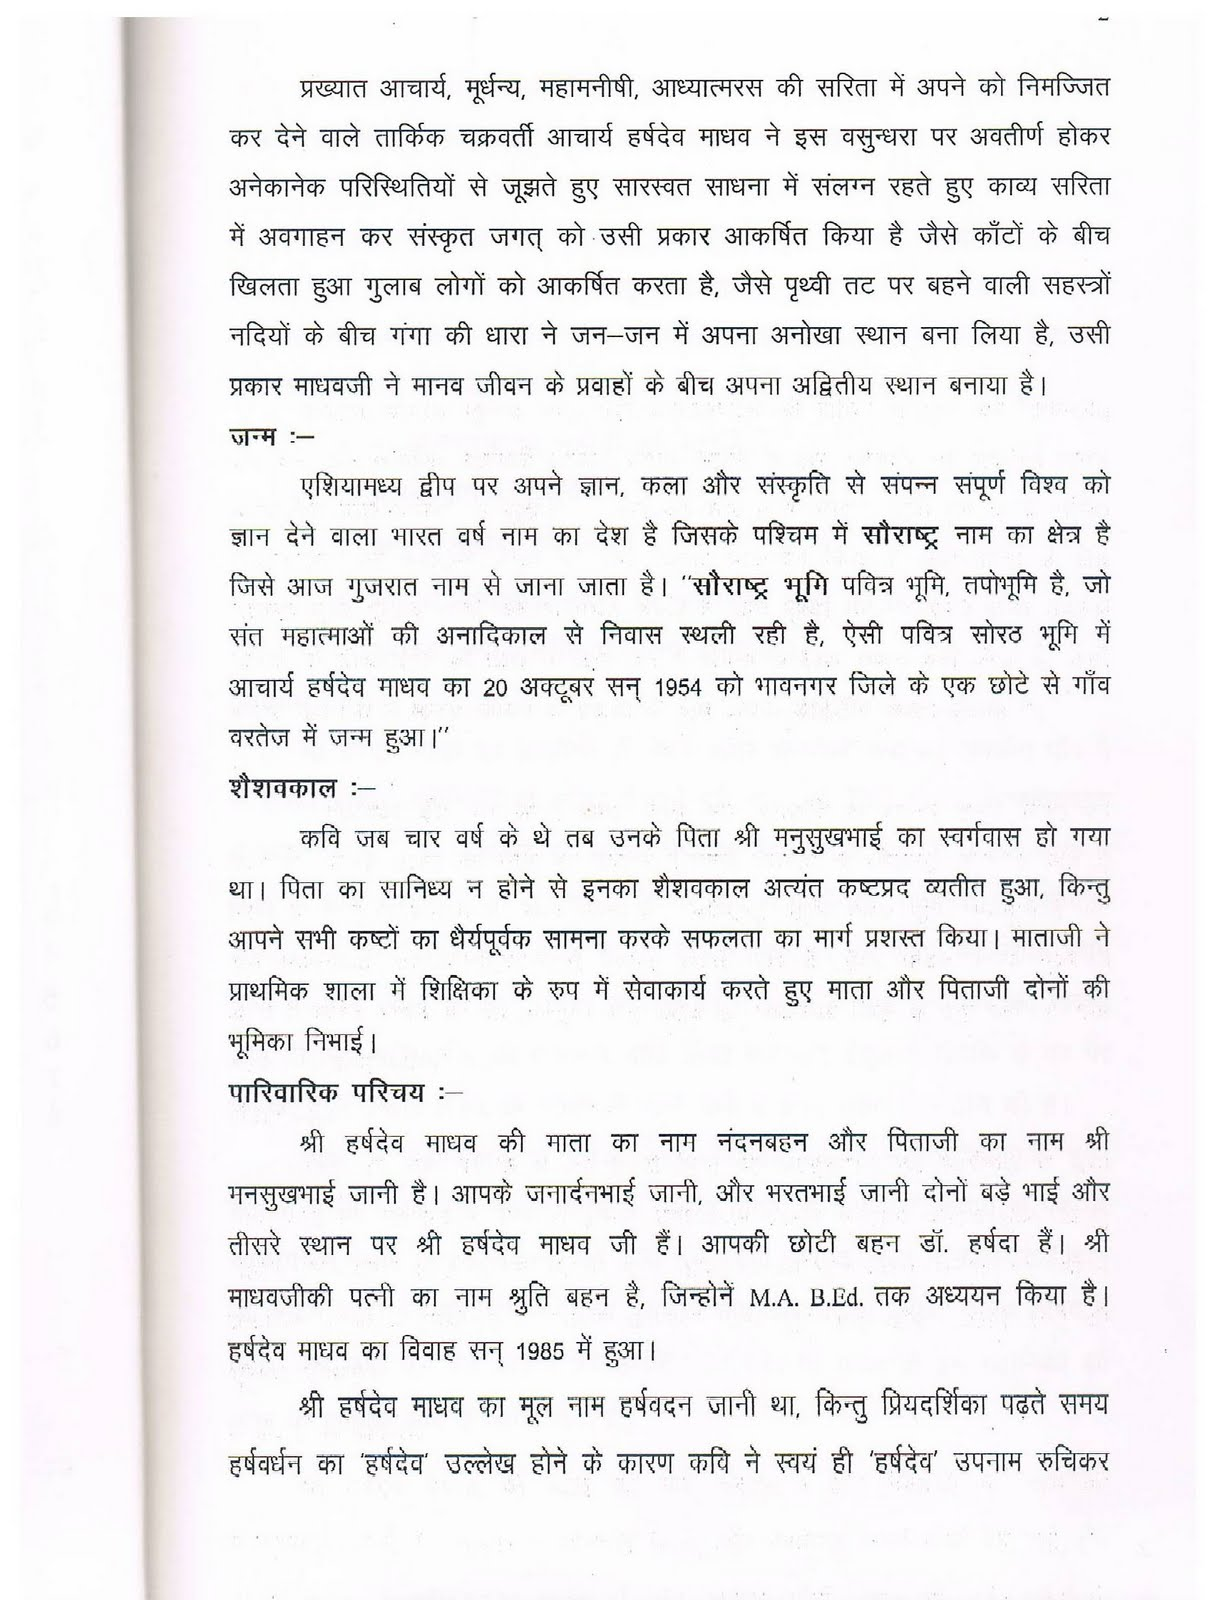 sanskrit essay on myself 10 lines essay on myself in sanskrit language it's urgent - 55181.